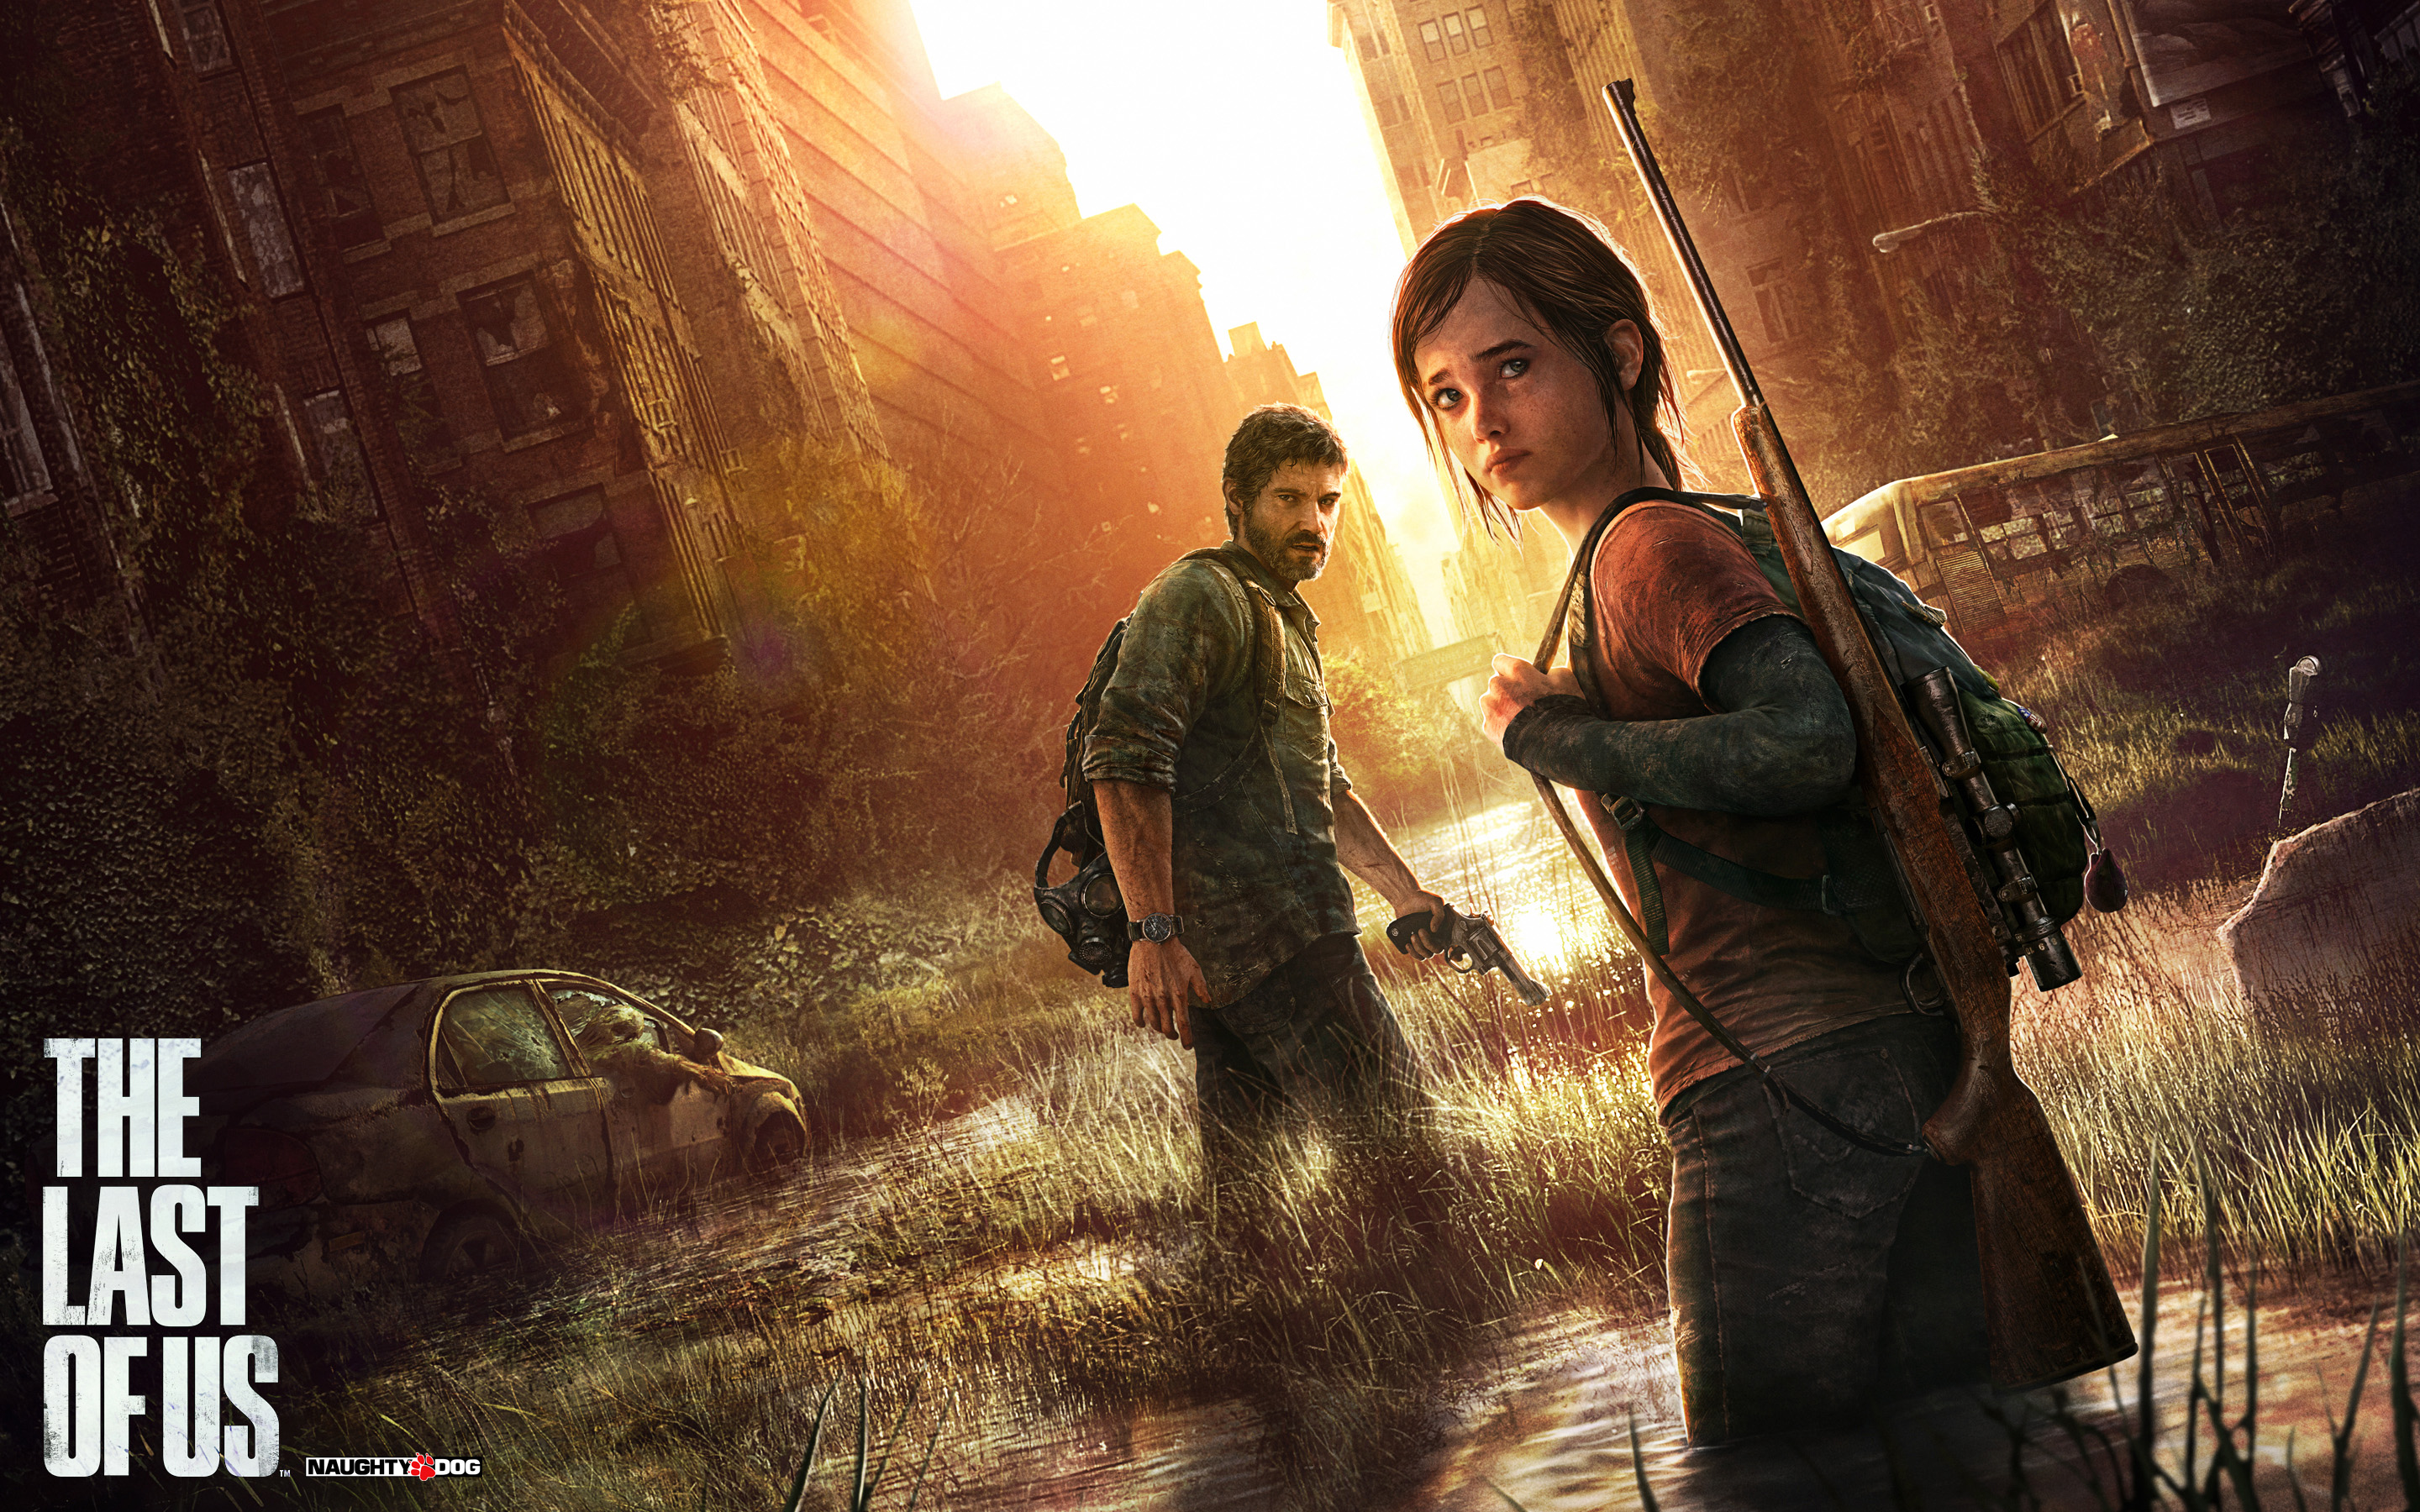 The Last of Us Video Game Wallpapers HD Wallpapers 2880x1800